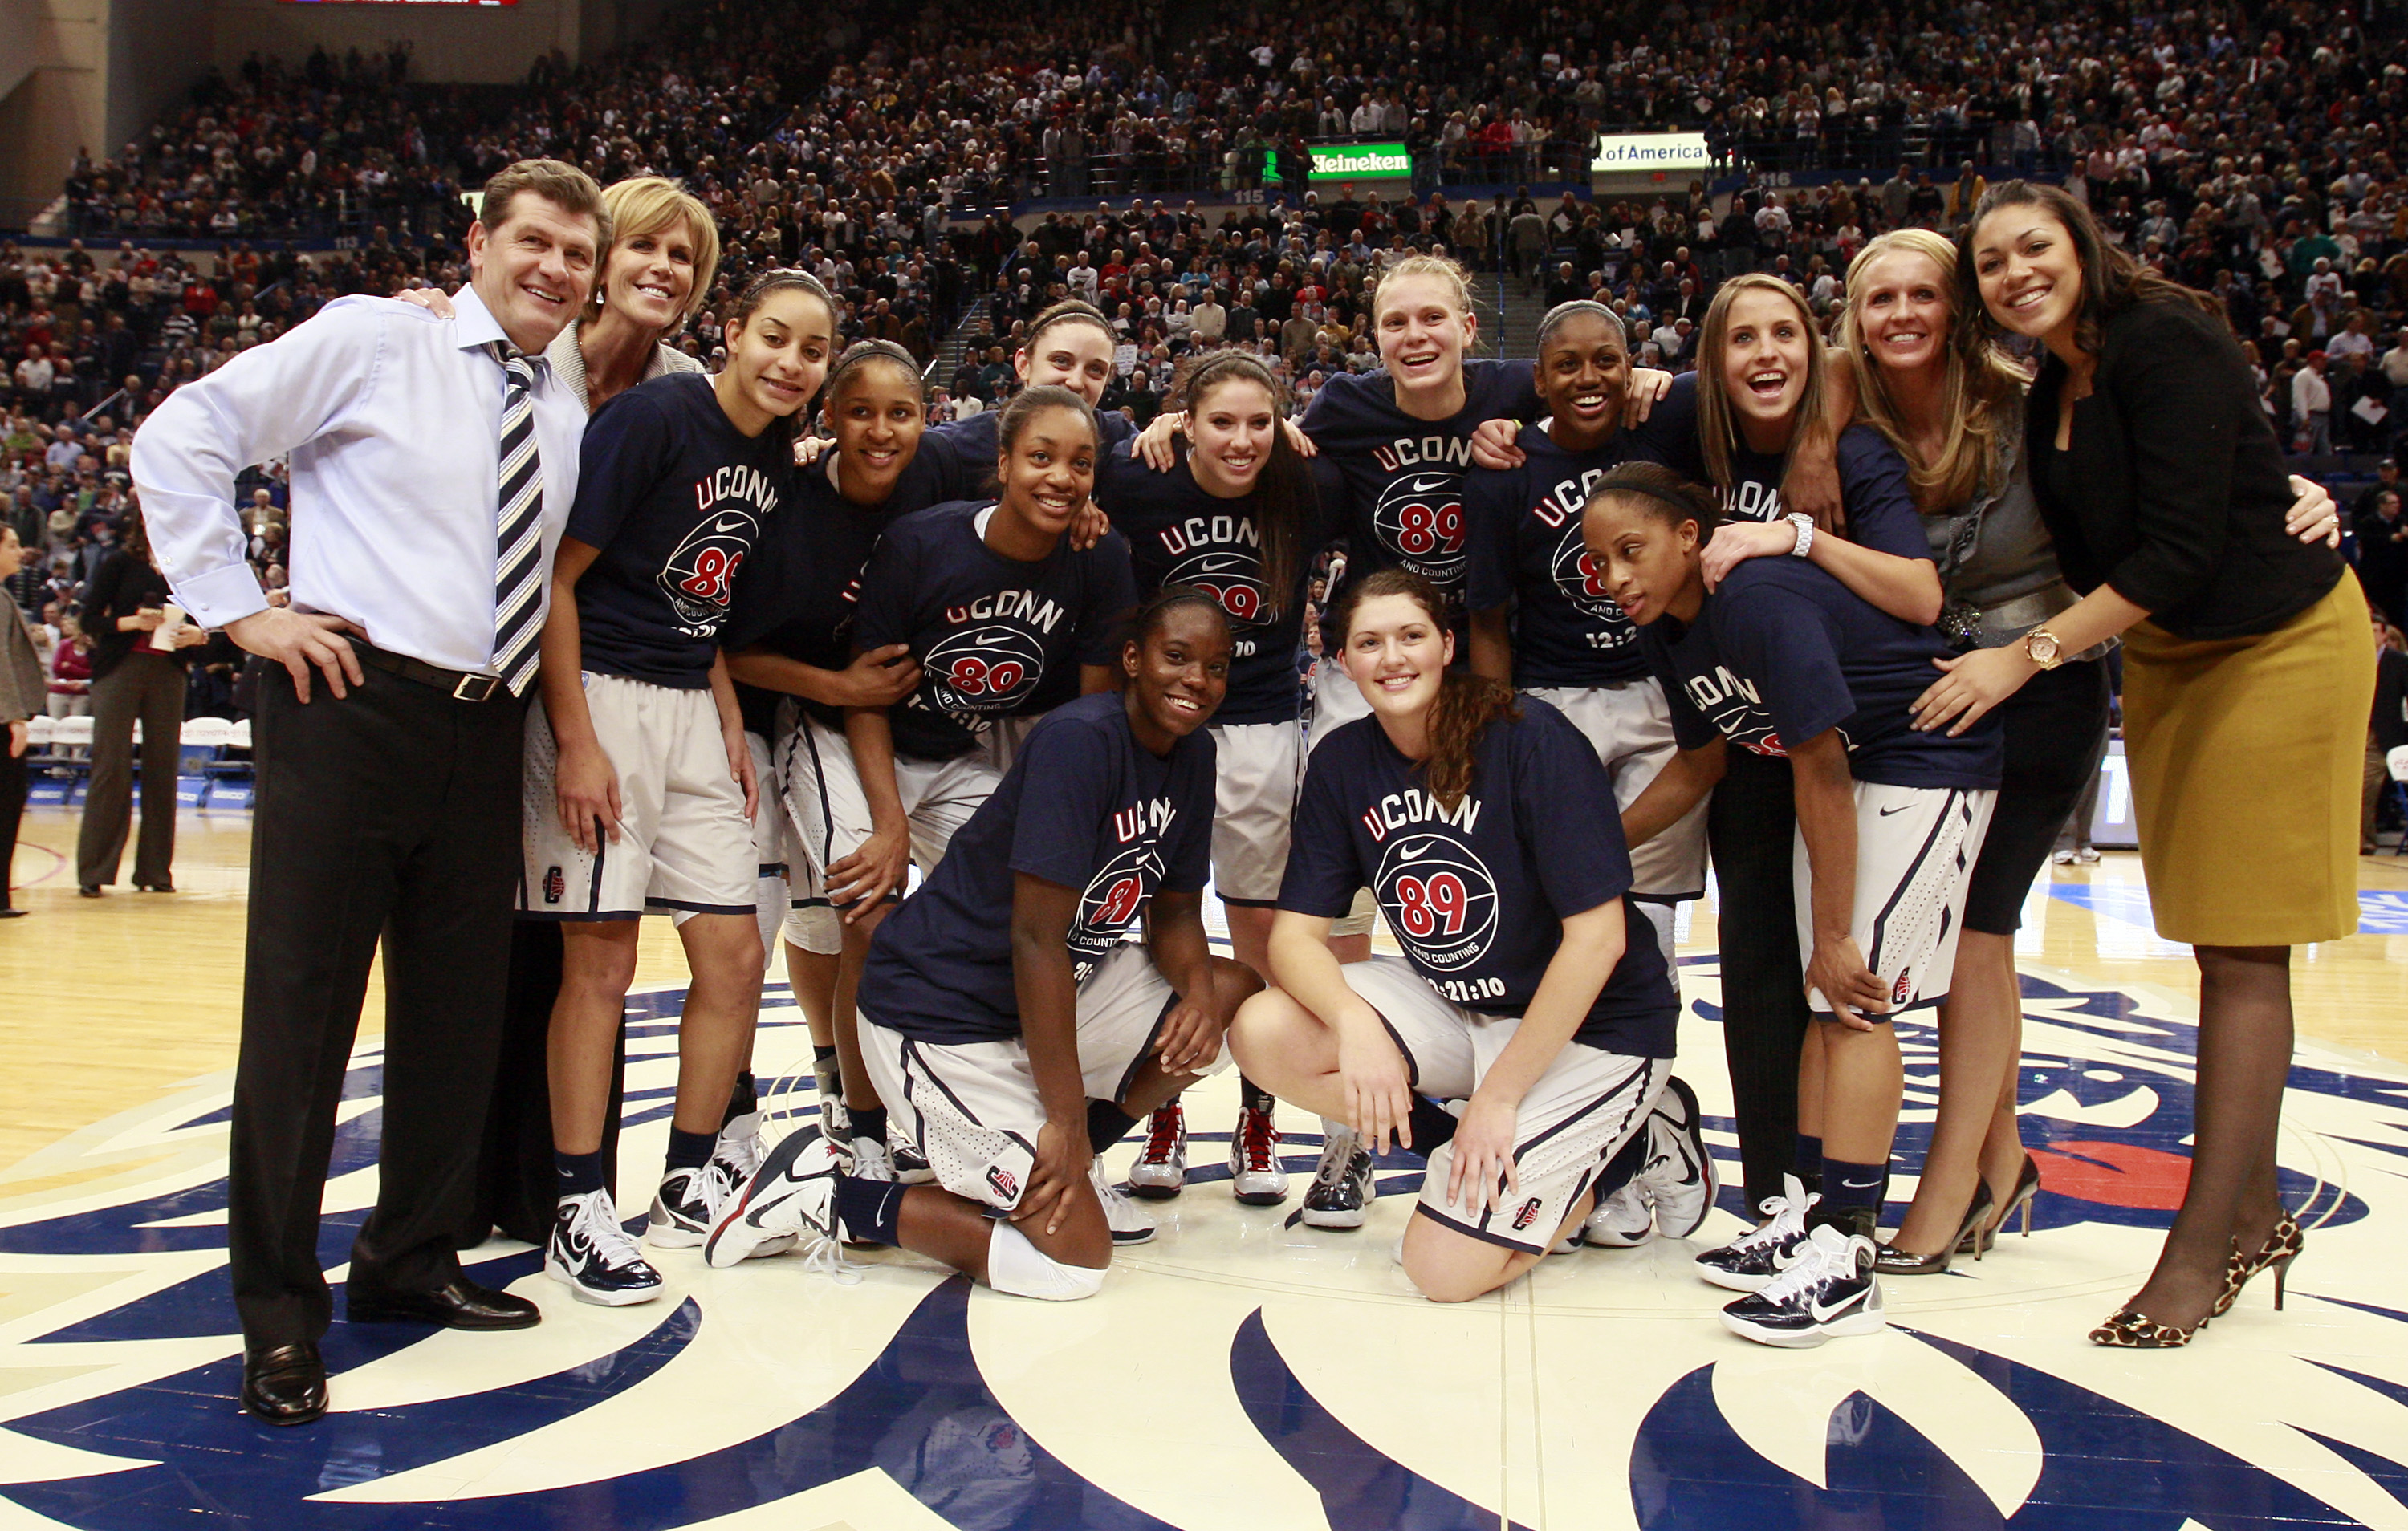 HARTFORD, CT - DECEMBER 21:  Coach Geno Auriemma of Connecticut and his team pose for a picture after defeating Florida State on December 21, 2010 in Hartford, Connecticut. Connecticut set a record with 89 straight wins without a defeat. Connecticut set a